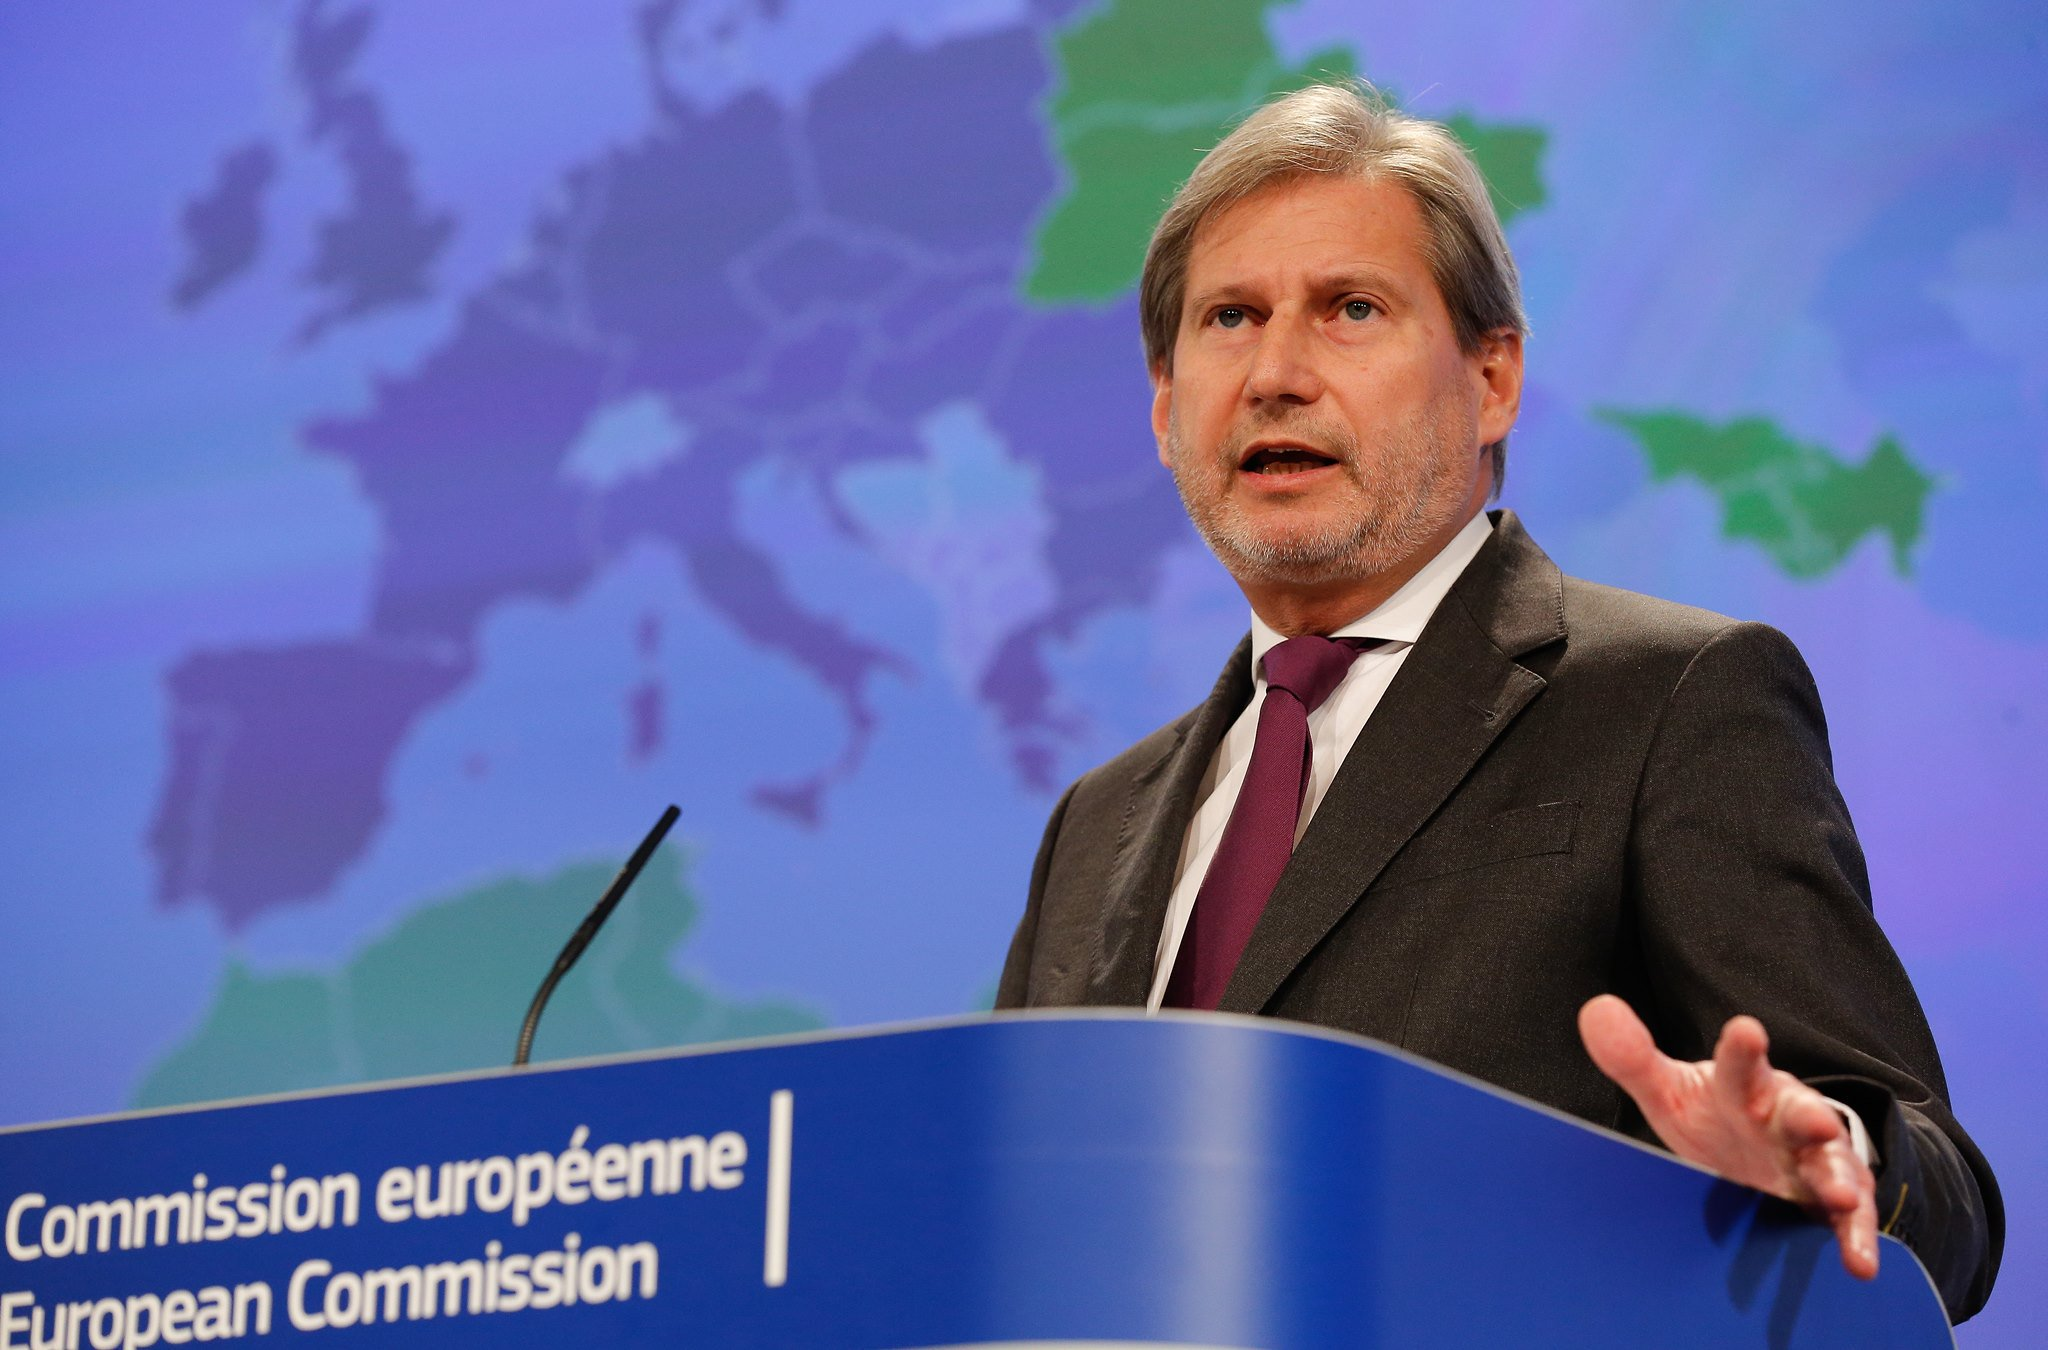 Commissioner Hahn optimistic about launch of accession negotiations